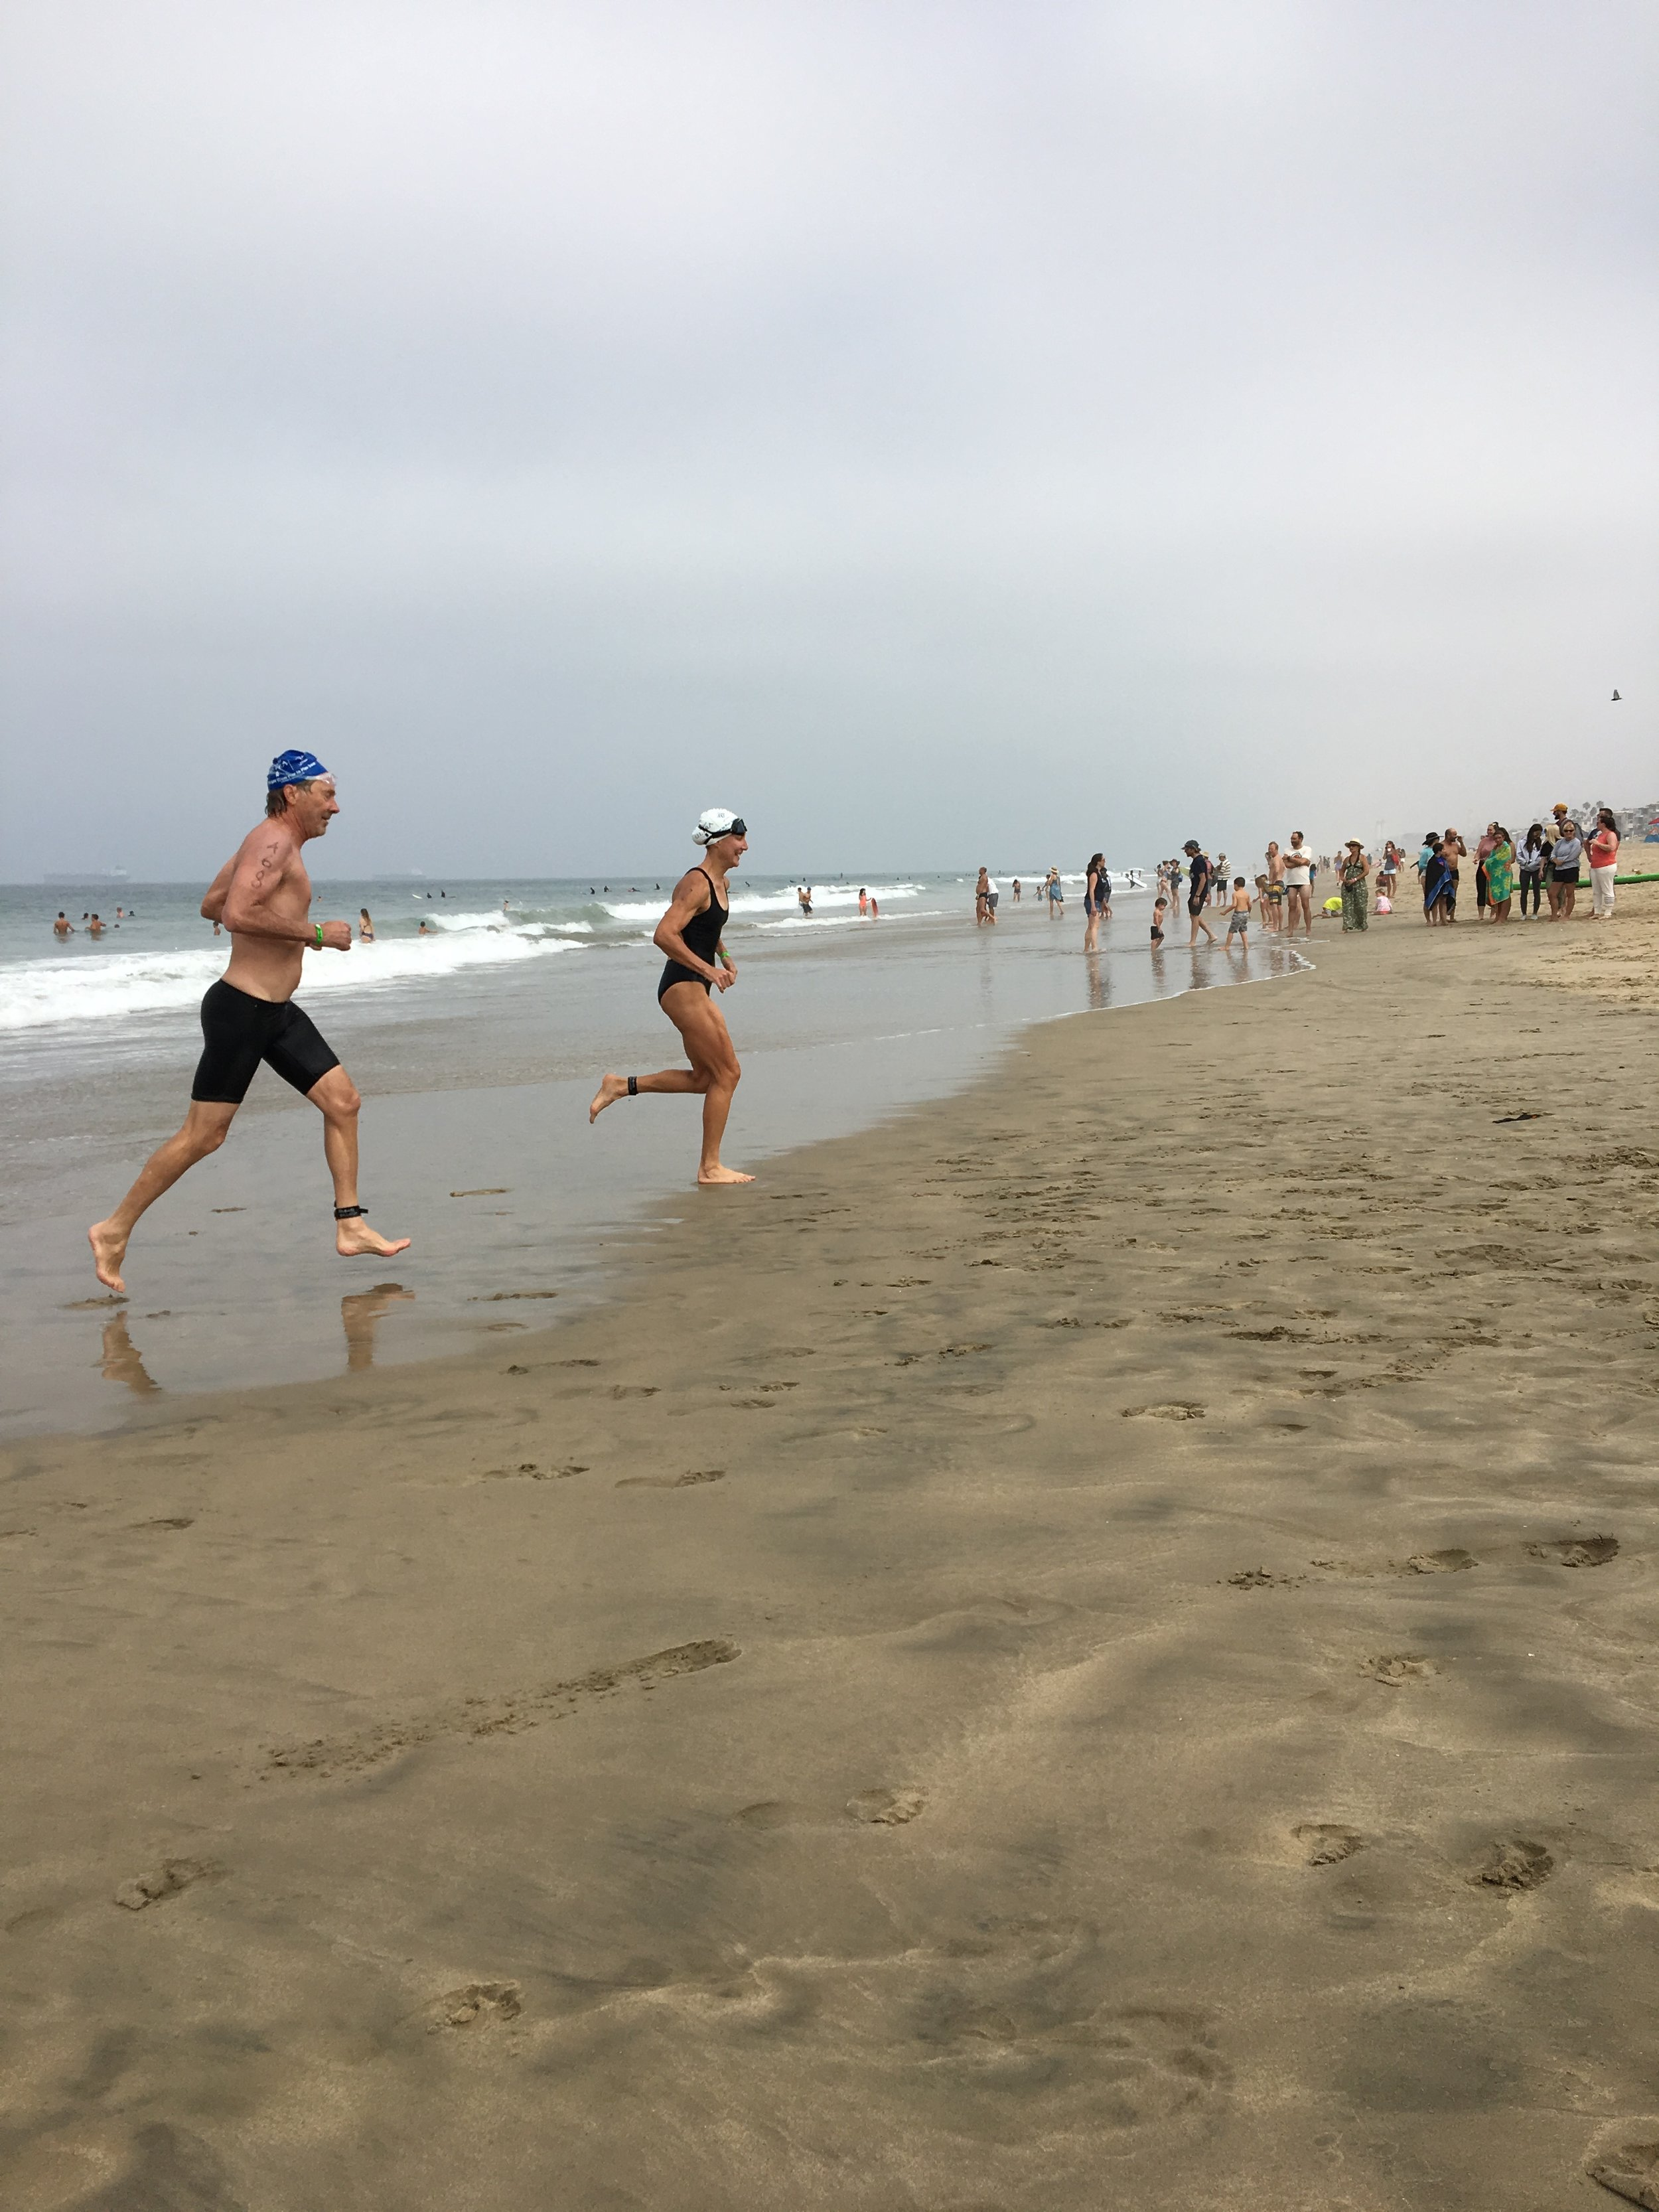 Exiting the water at the Pier To Pier race last Sunday. Photo courtesy of Hadara Katarski.